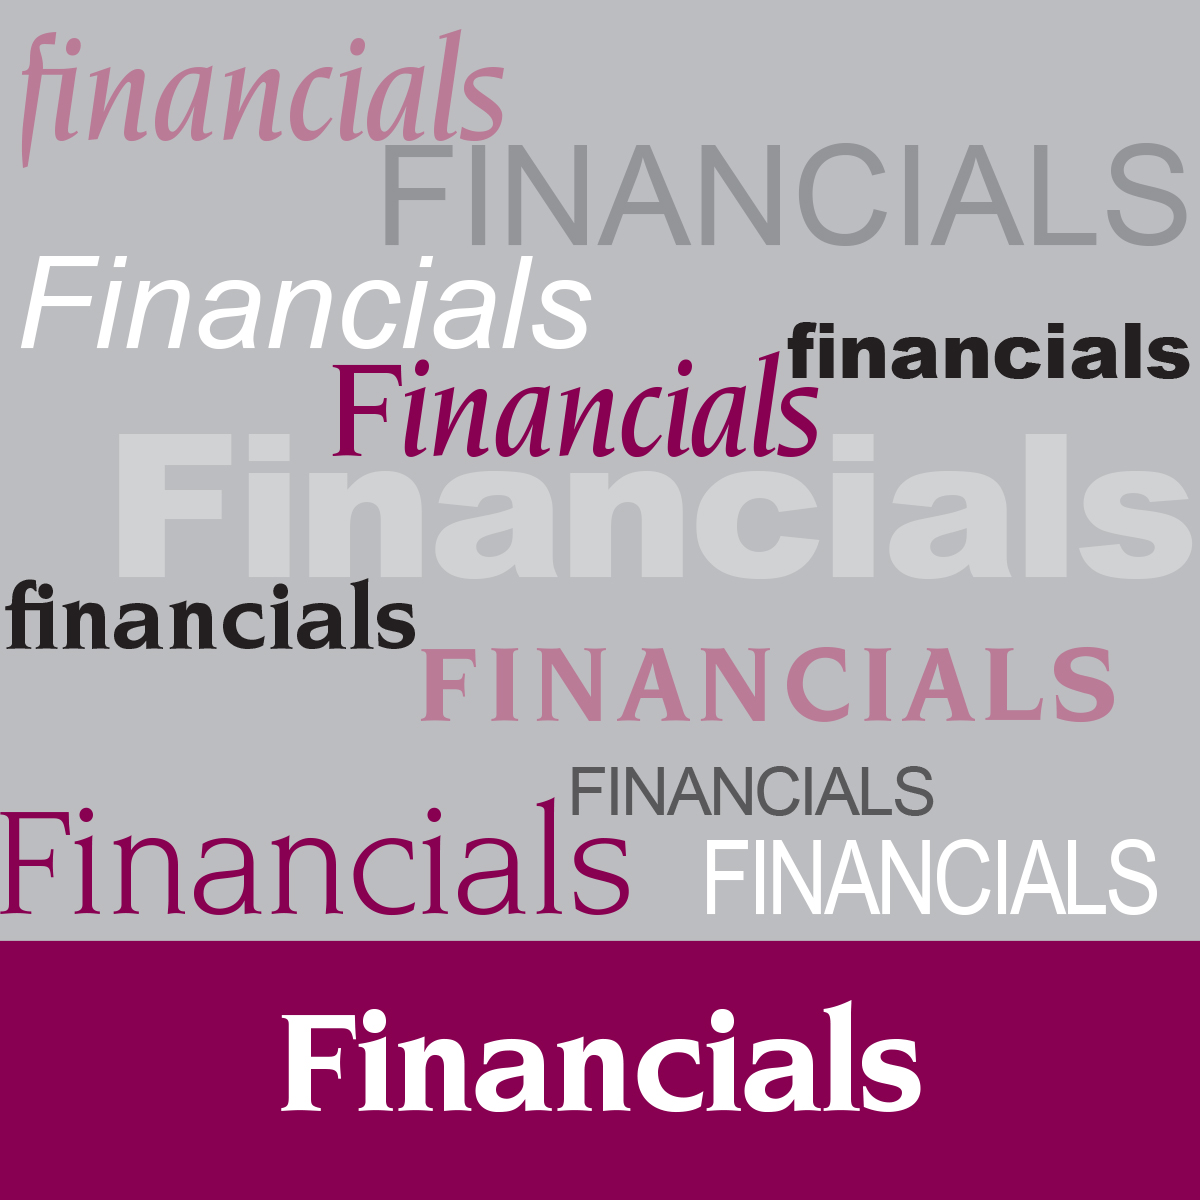 individualsectionphotos_FINANCIALS.jpg